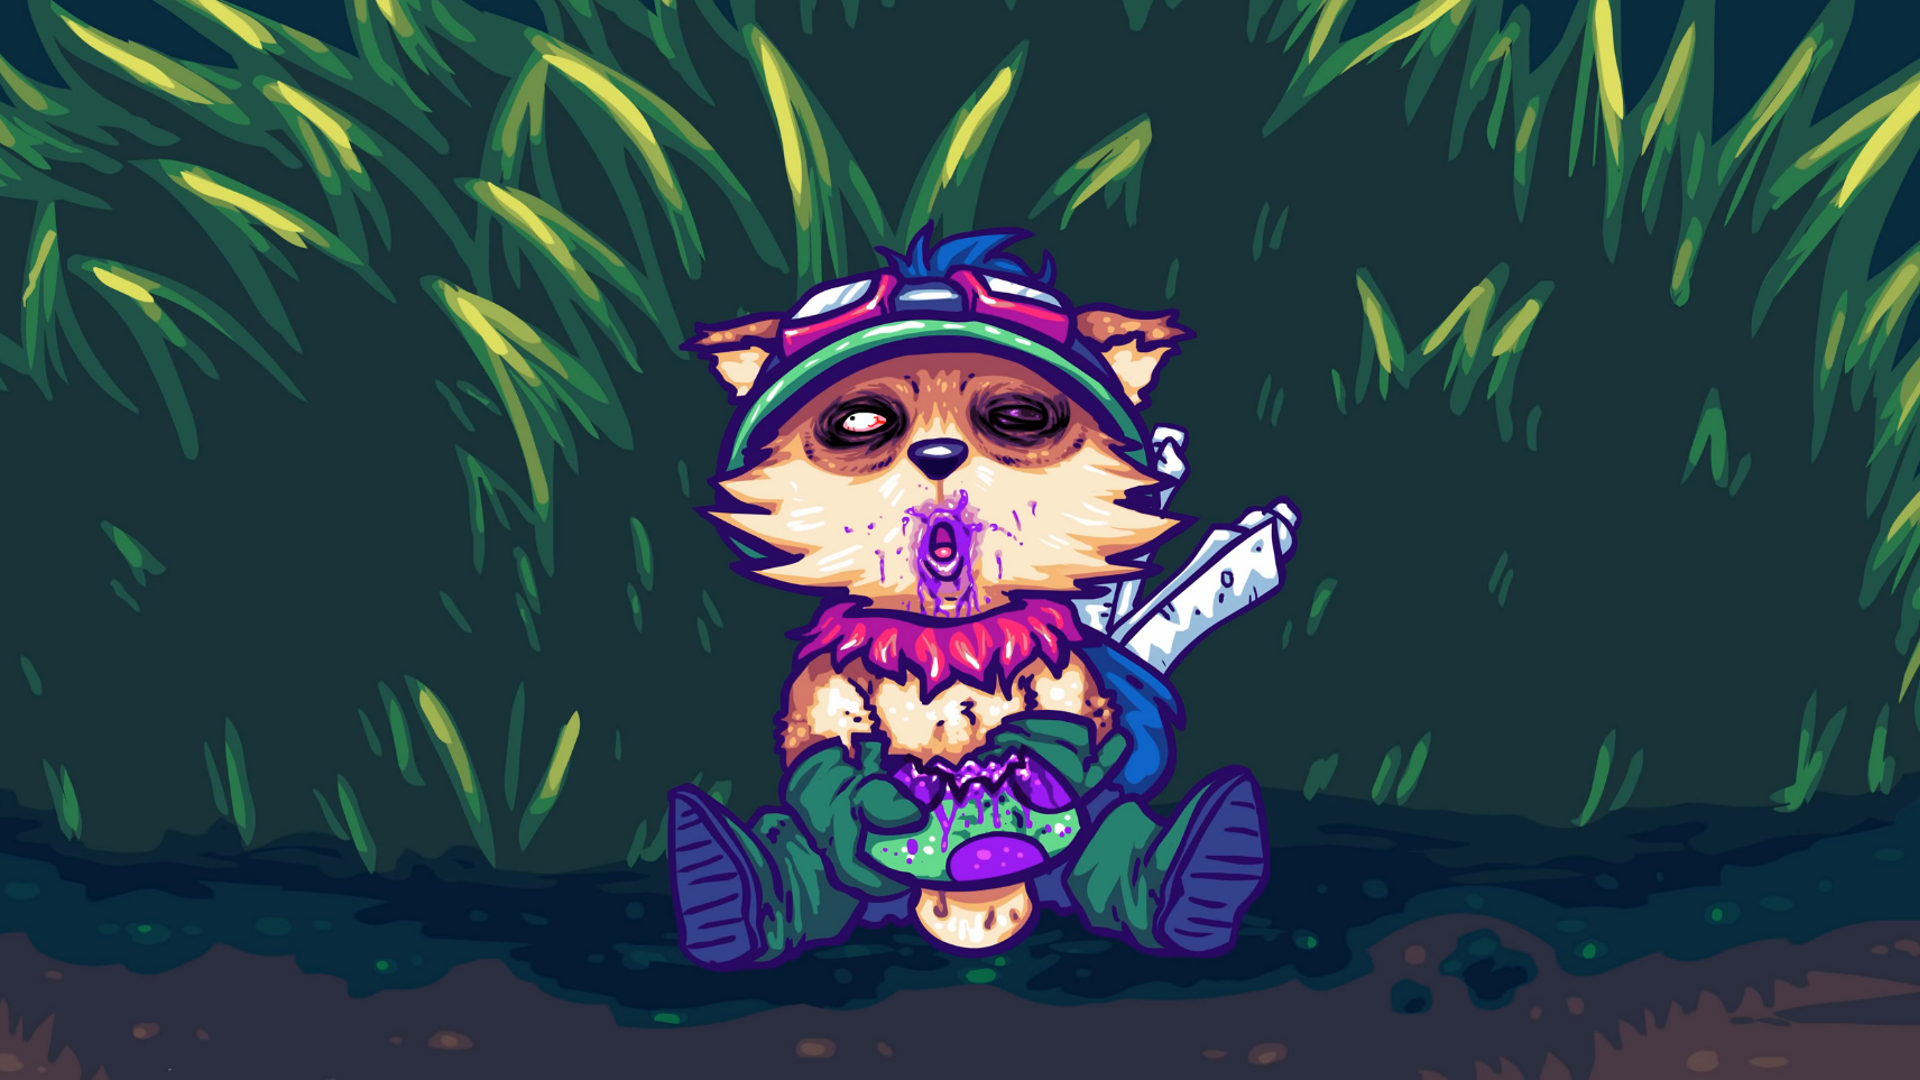 Drugged Teemo wallpaper